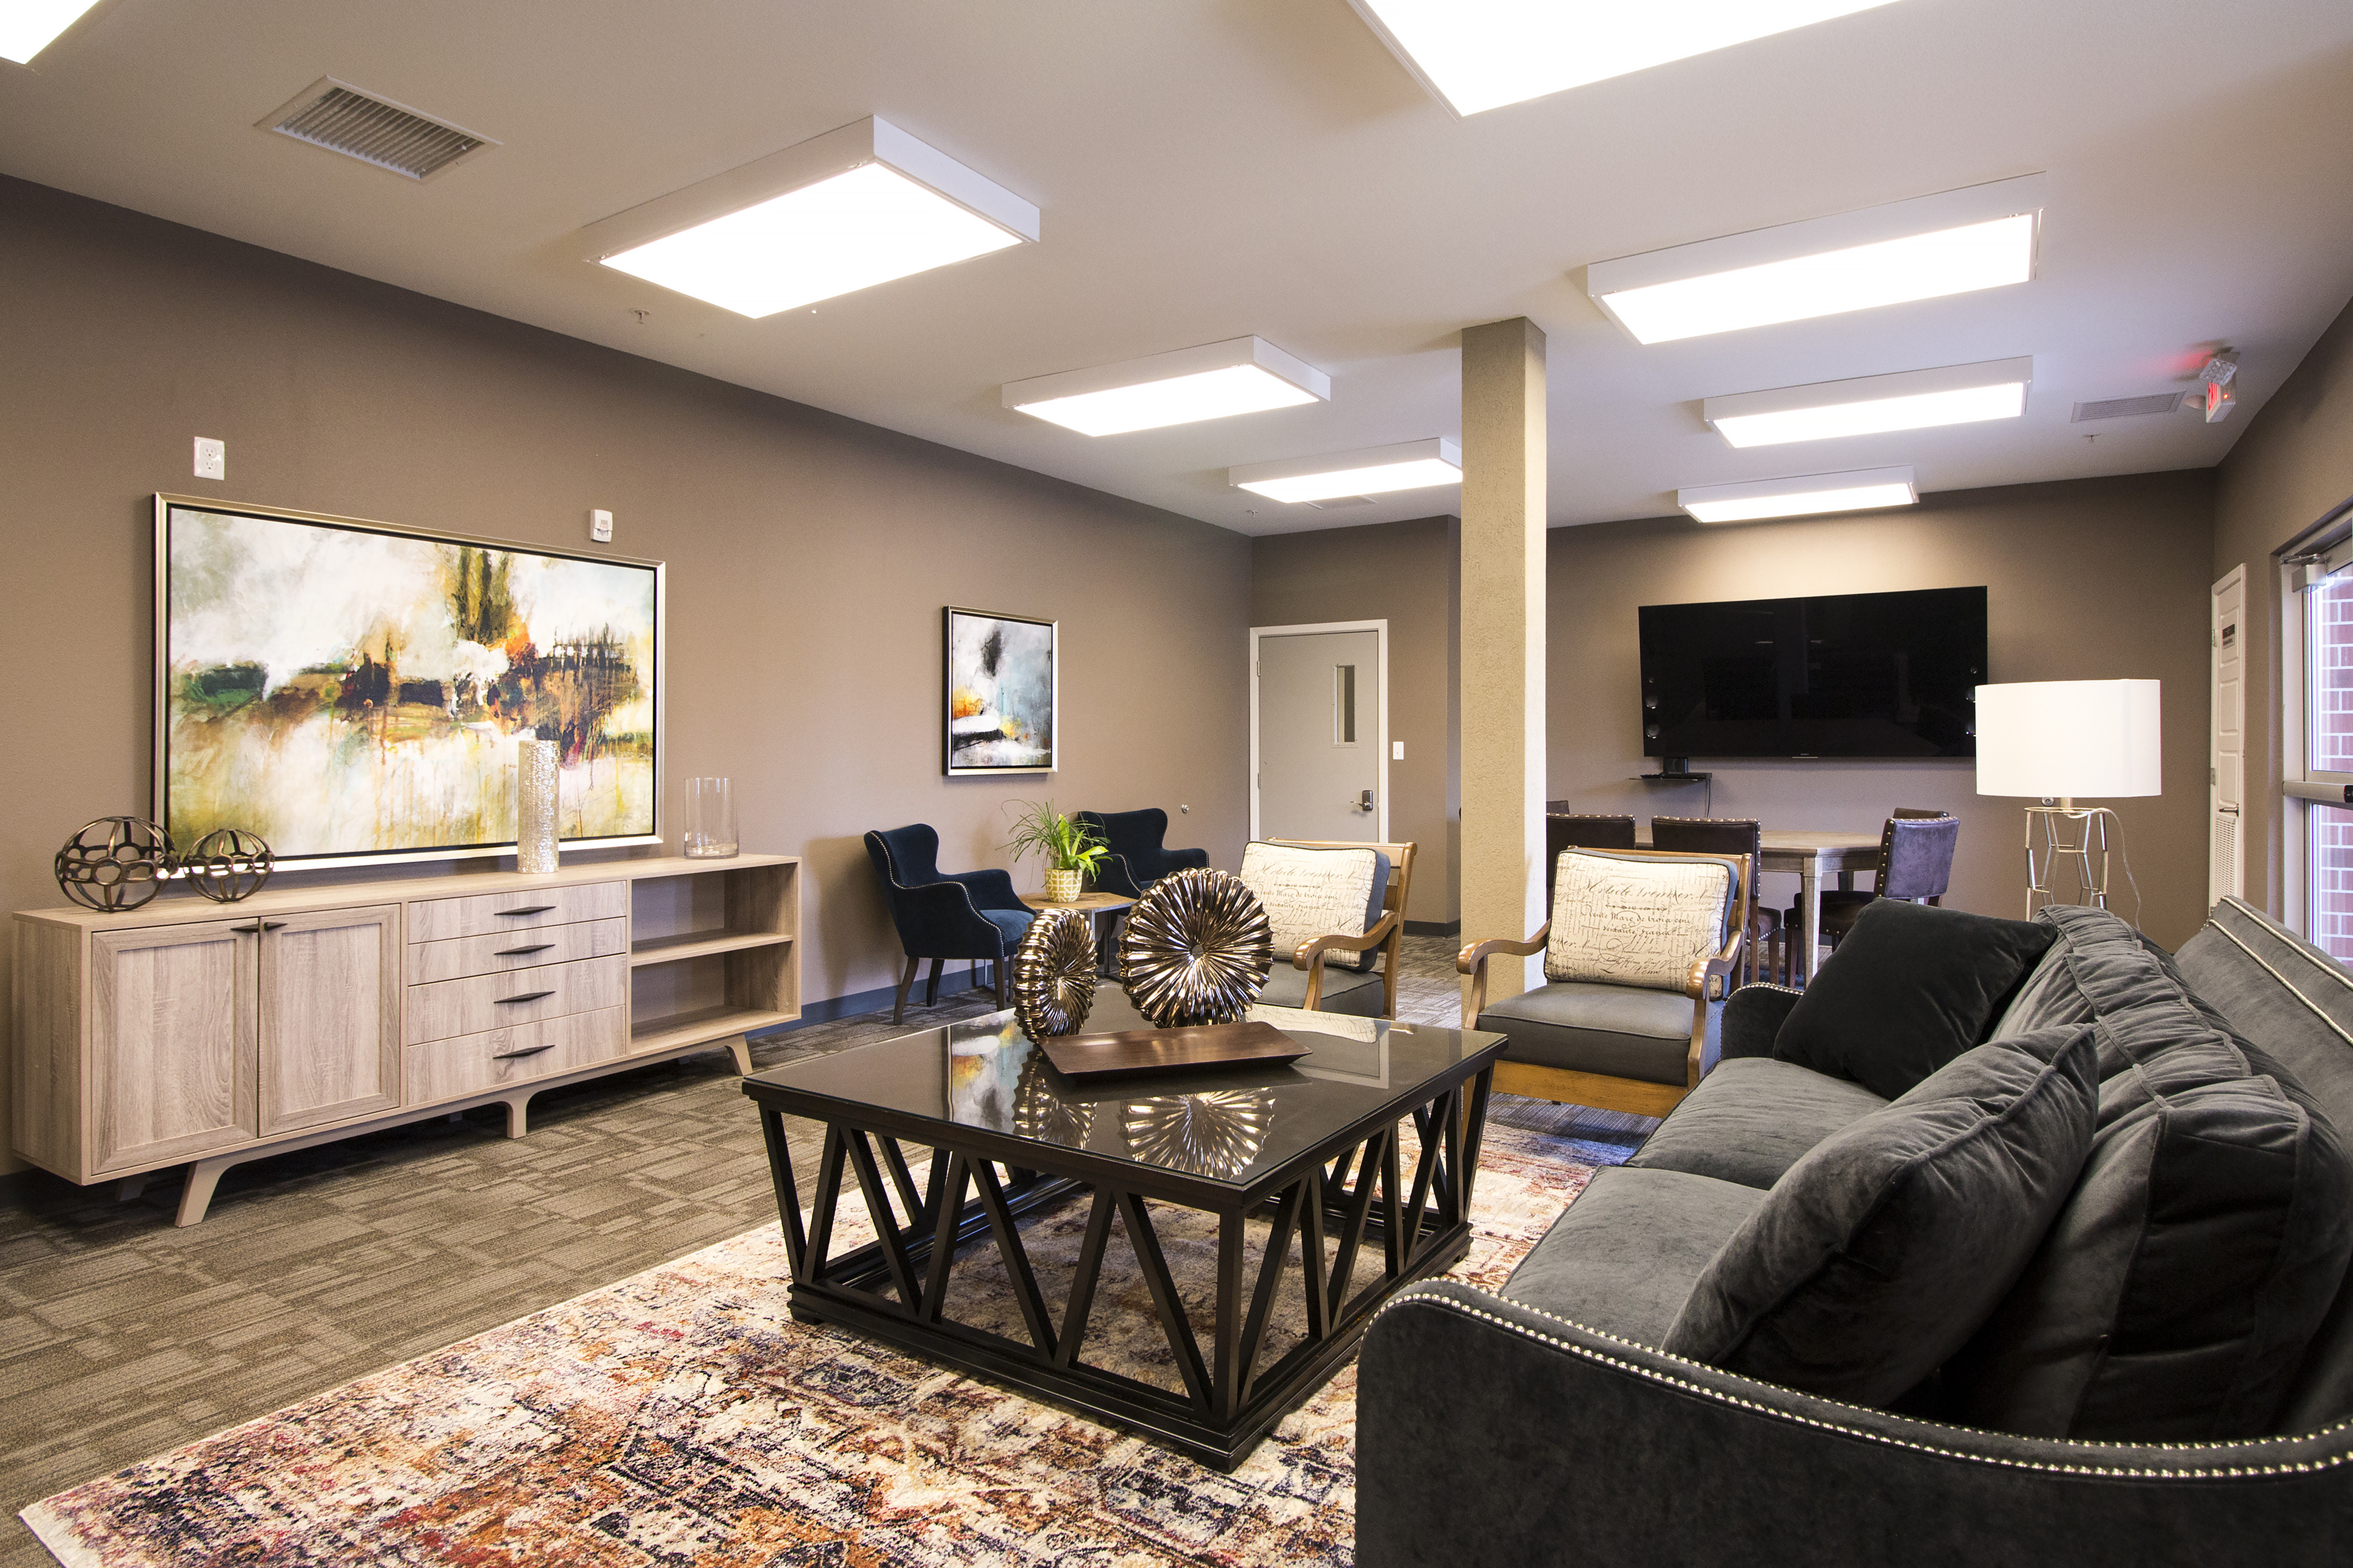 Coryell Commons 55+ community room with TV